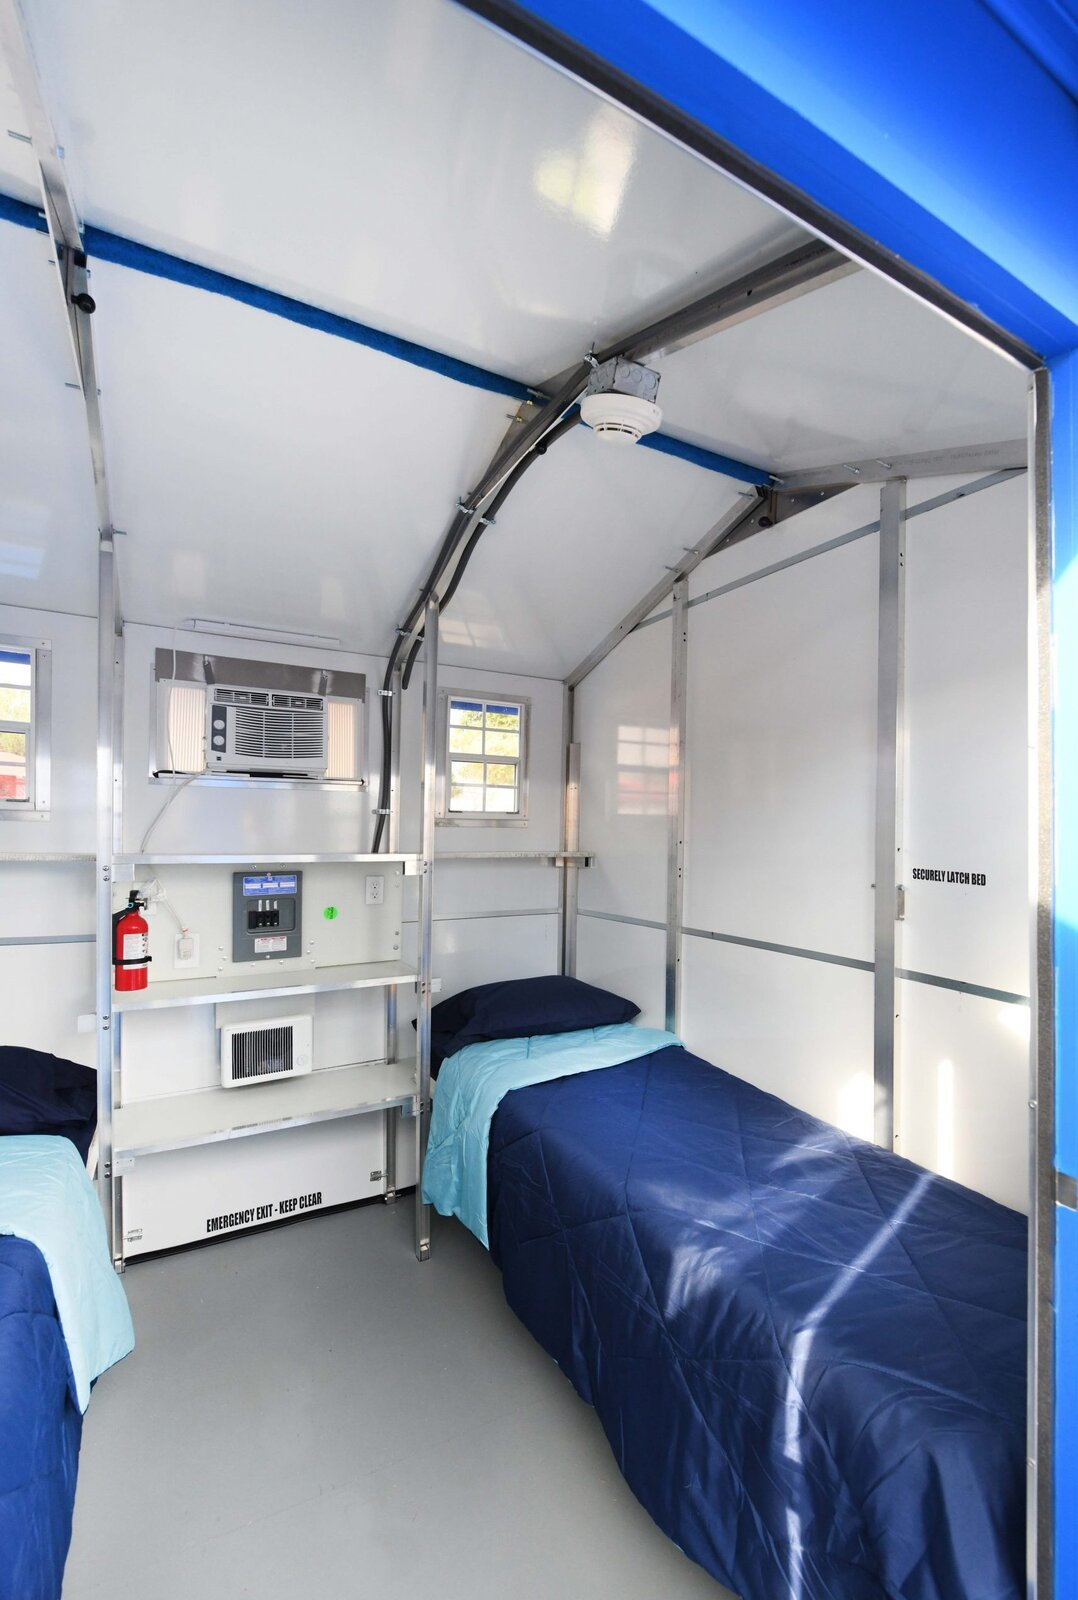 Bedroom, Ceiling Lighting, Storage, and Bed Each prefab includes fold-out beds, storage space, electrical outlets, lighting, heating and air conditioning units, as well as a locking door and windows.  Photo 5 of 12 in L.A. Is Taking On Homelessness With a New, Brightly Colored Tiny Home Village